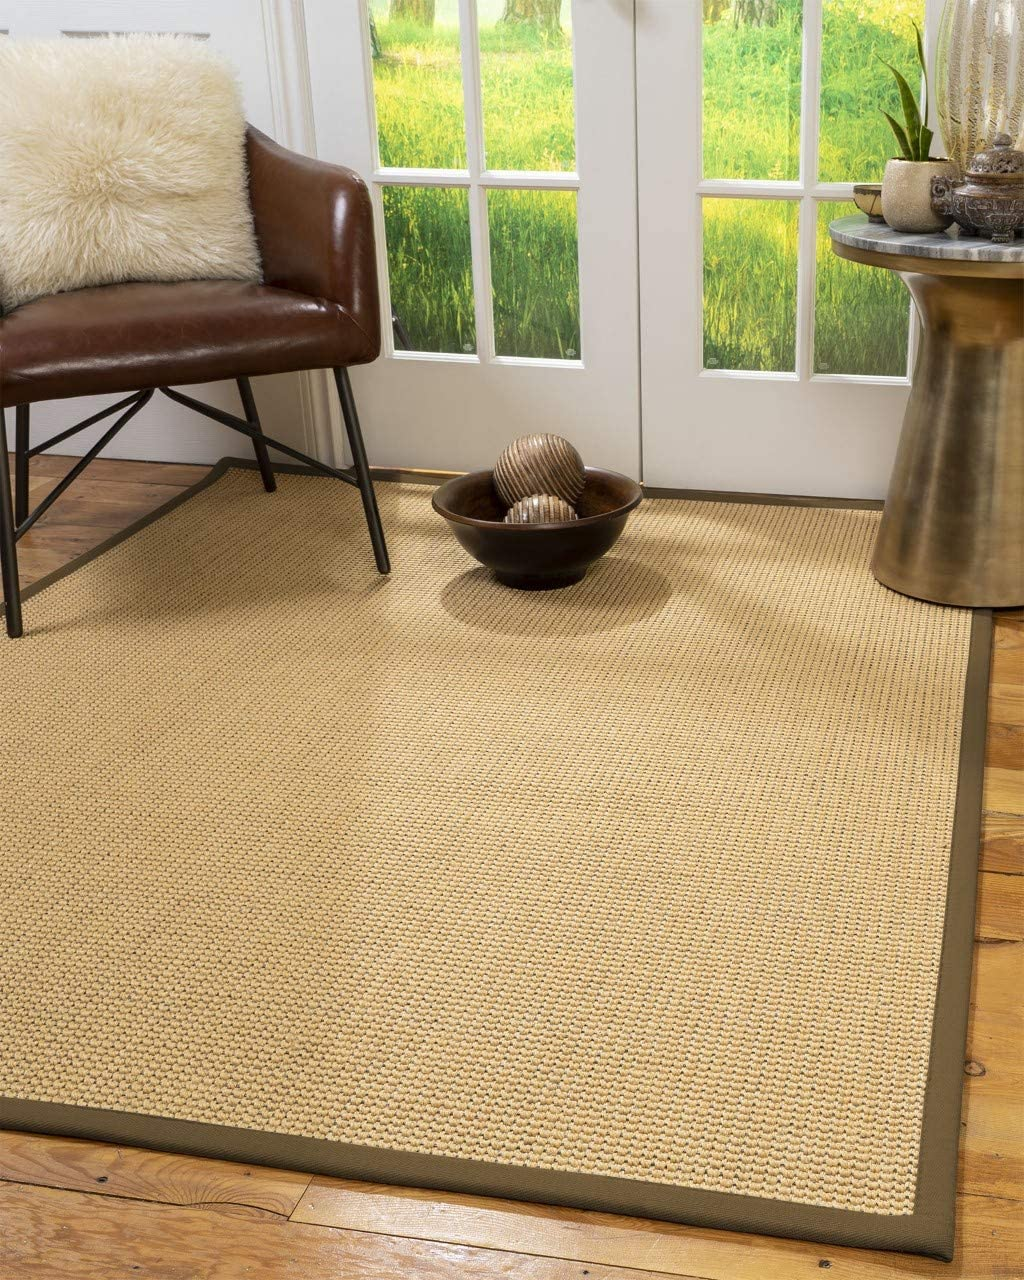 Natural Area Rugs 100 Natural Fiber Handmade Dubai, Beige Sisal Rug, 9 x 12 Malt Border